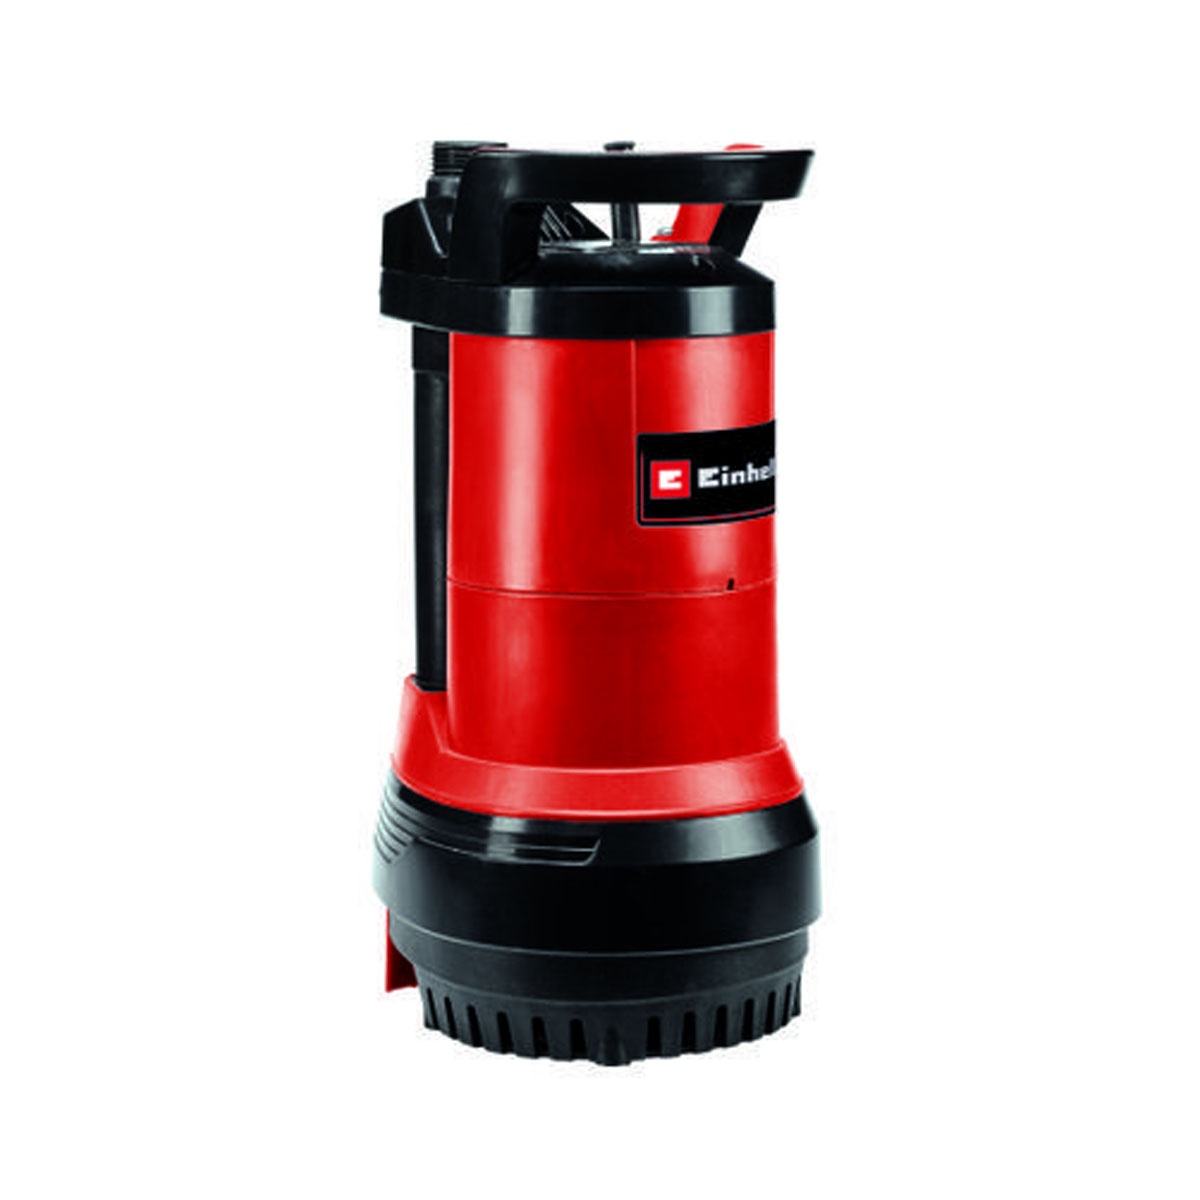 Einhell GE-PP 5555 RB-A